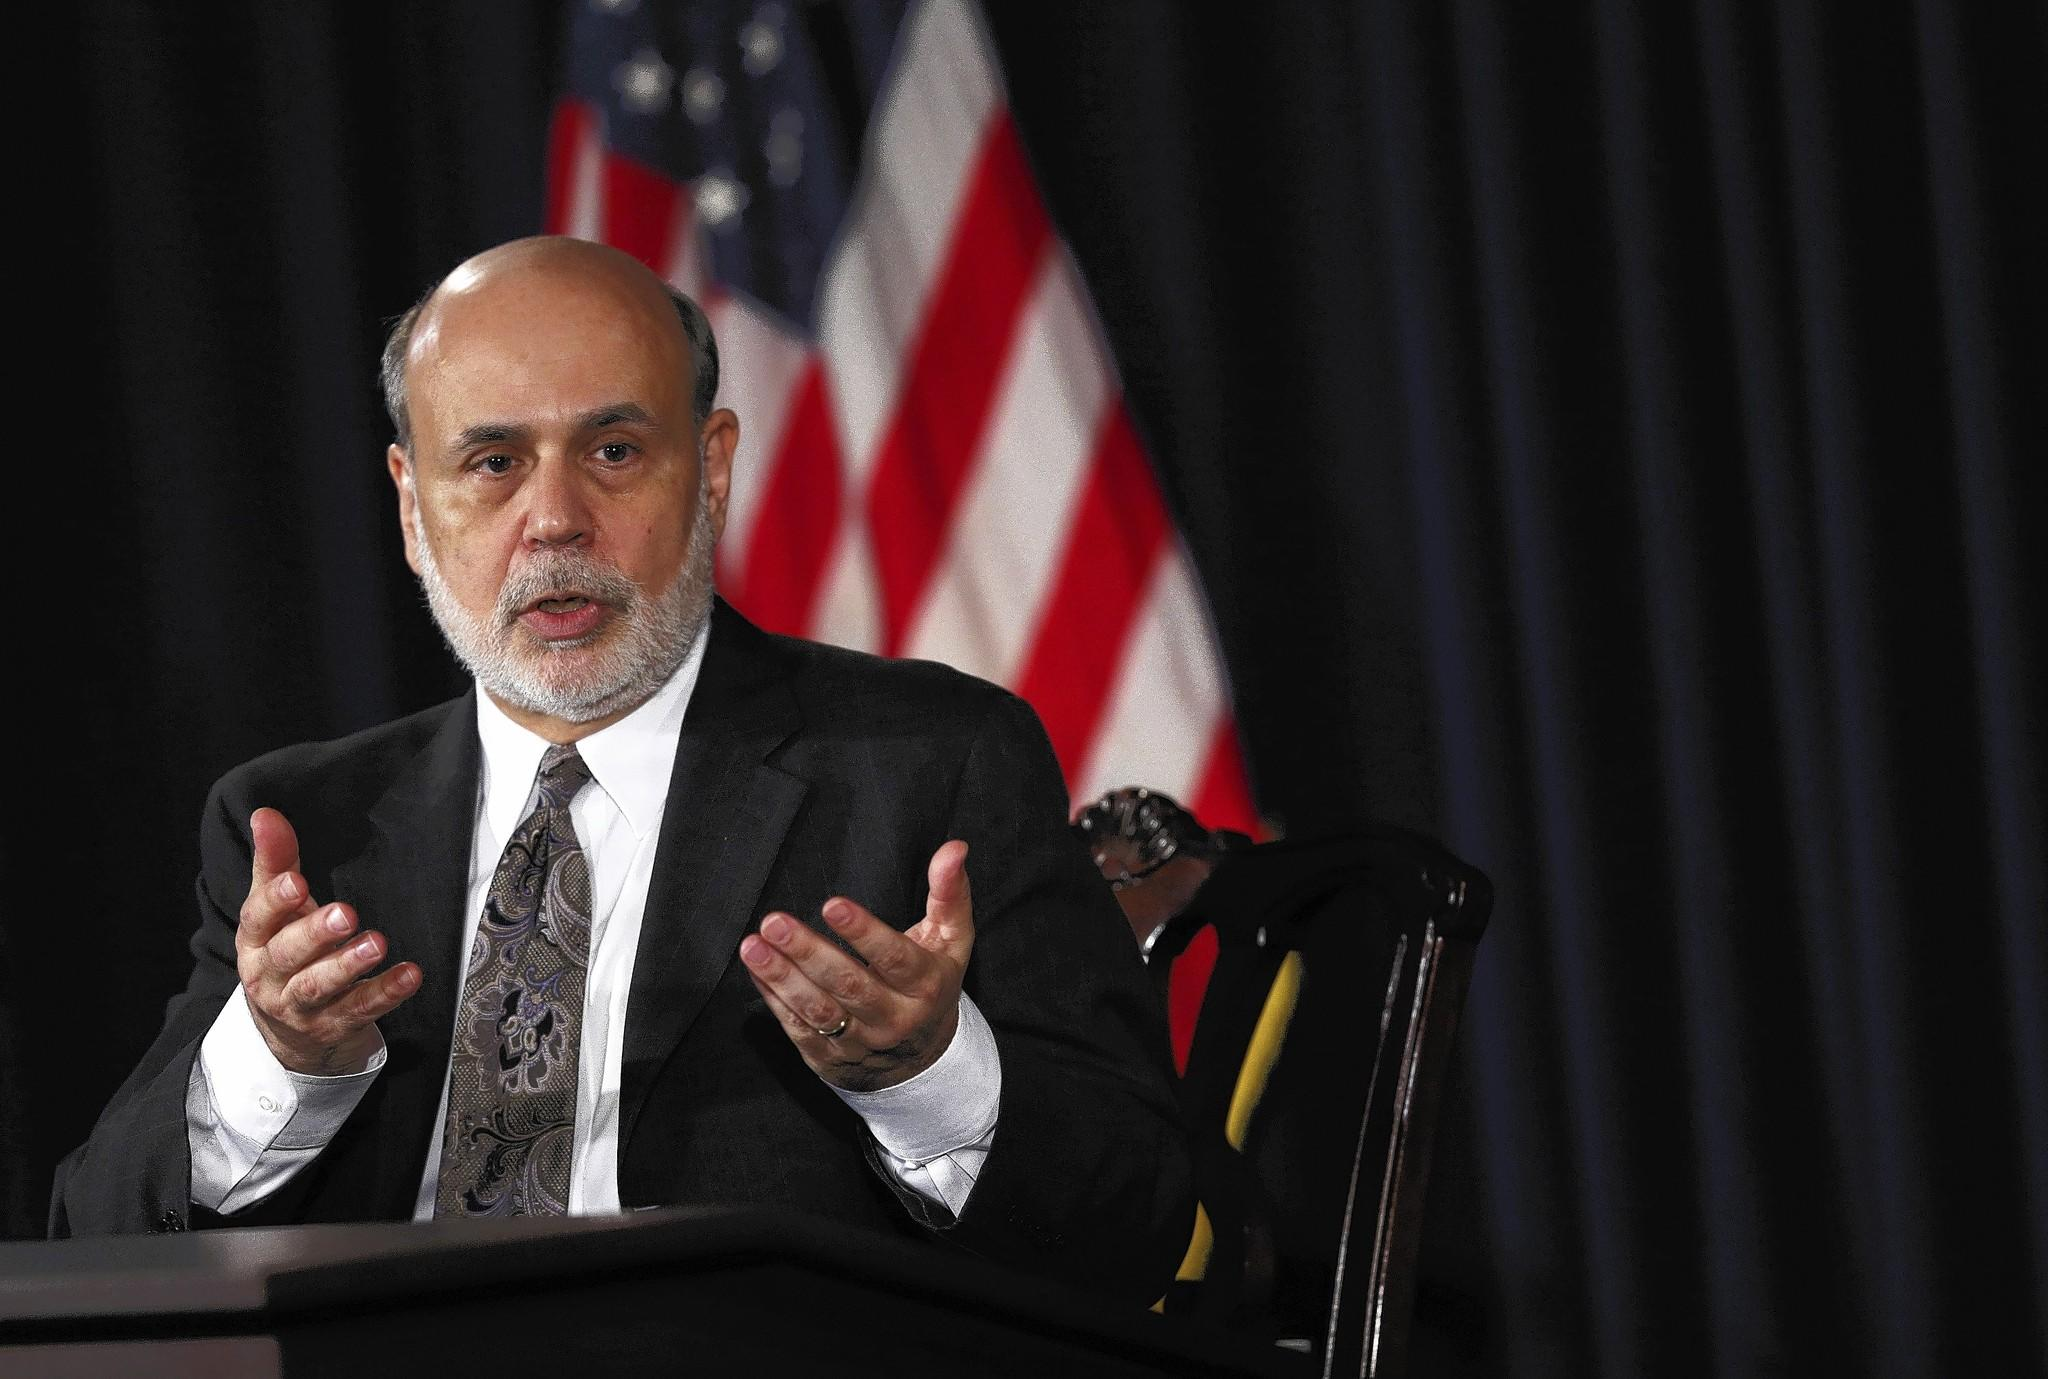 Fed Chairman Ben Bernanke is still worried about unemployment. But he thinks that the aggressive stimulus is working — not as much as he hoped, but slowly and surely.